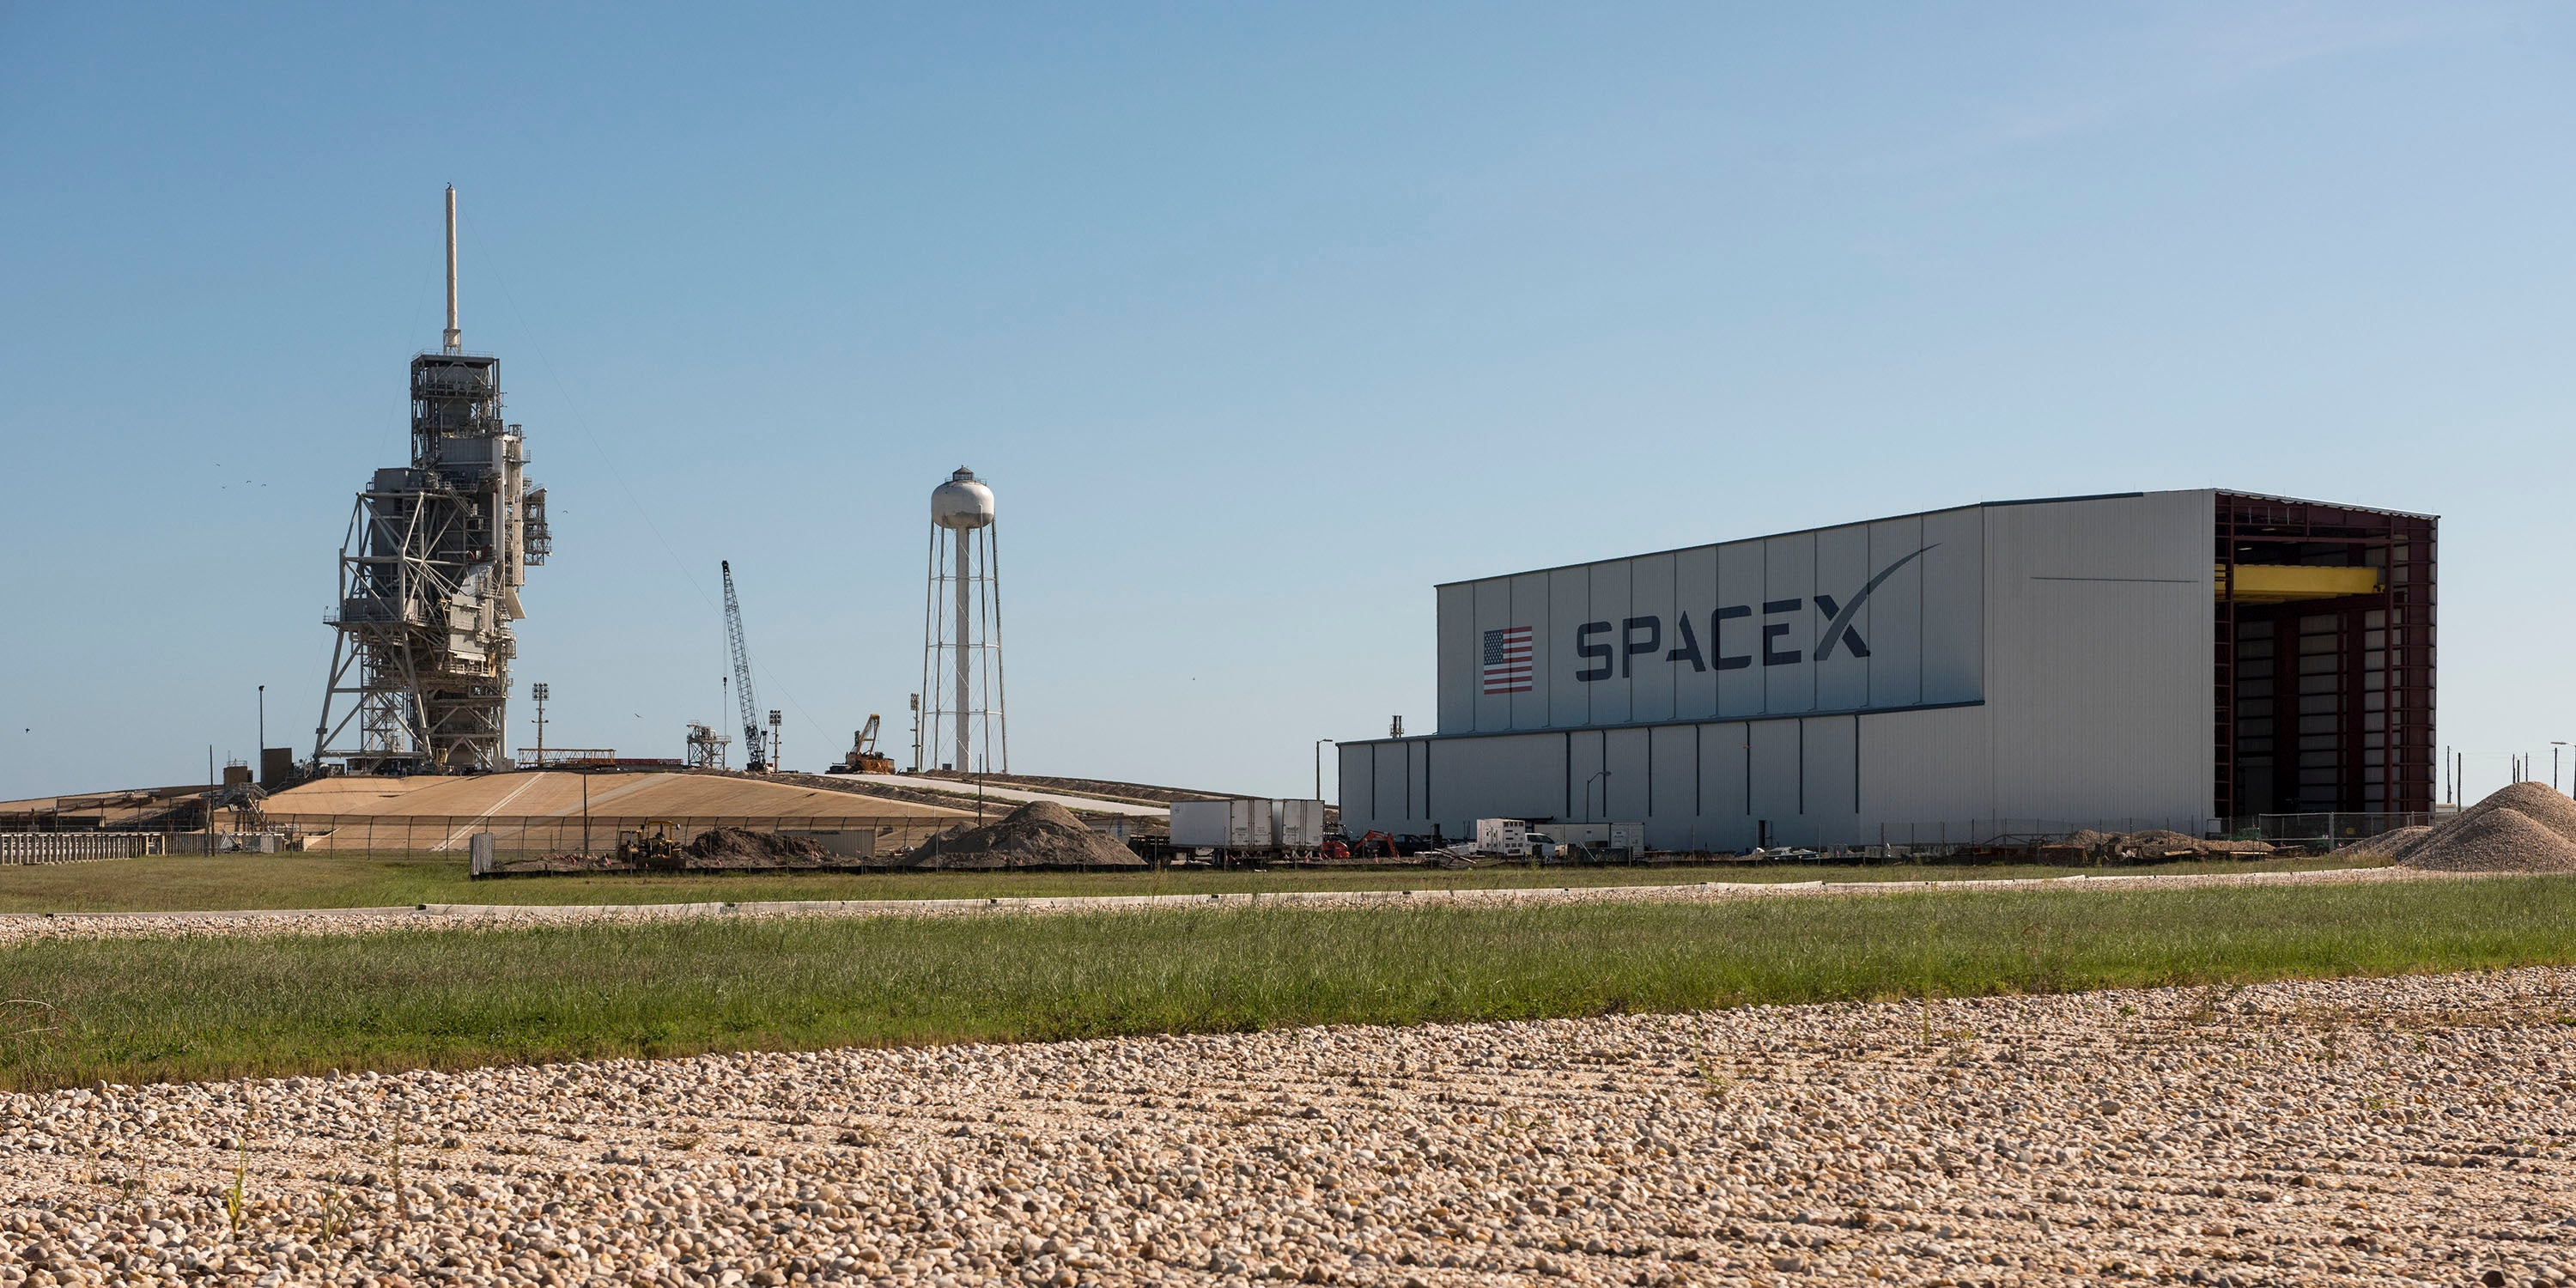 SpaceX's New Hangar Is Looking Good